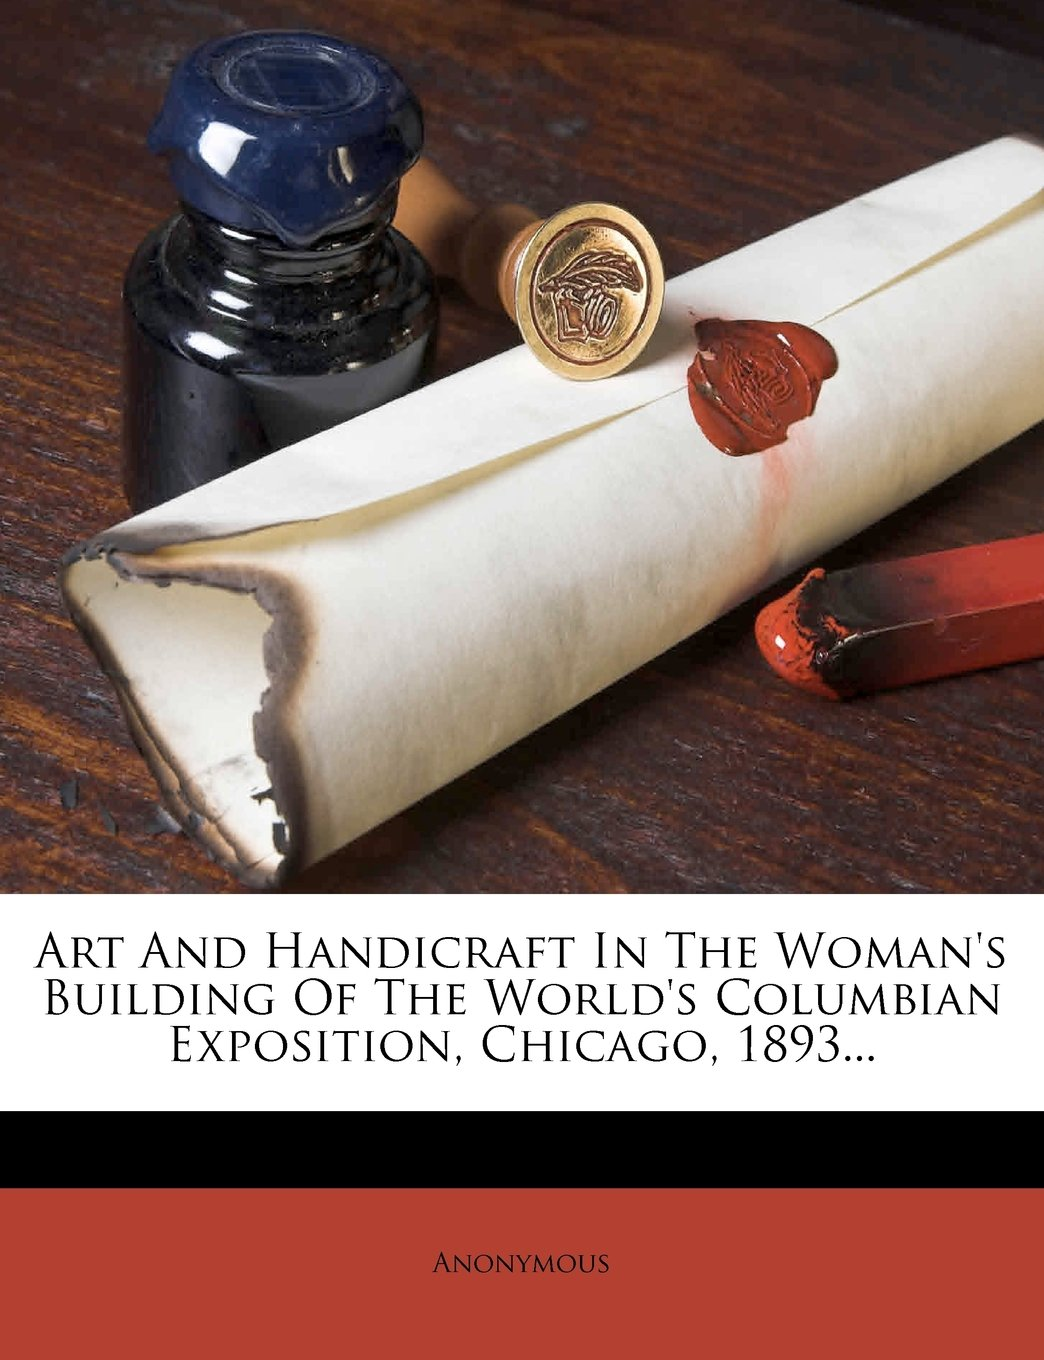 Download Art and Handicraft in the Woman's Building of the World's Columbian Exposition, Chicago, 1893... ebook